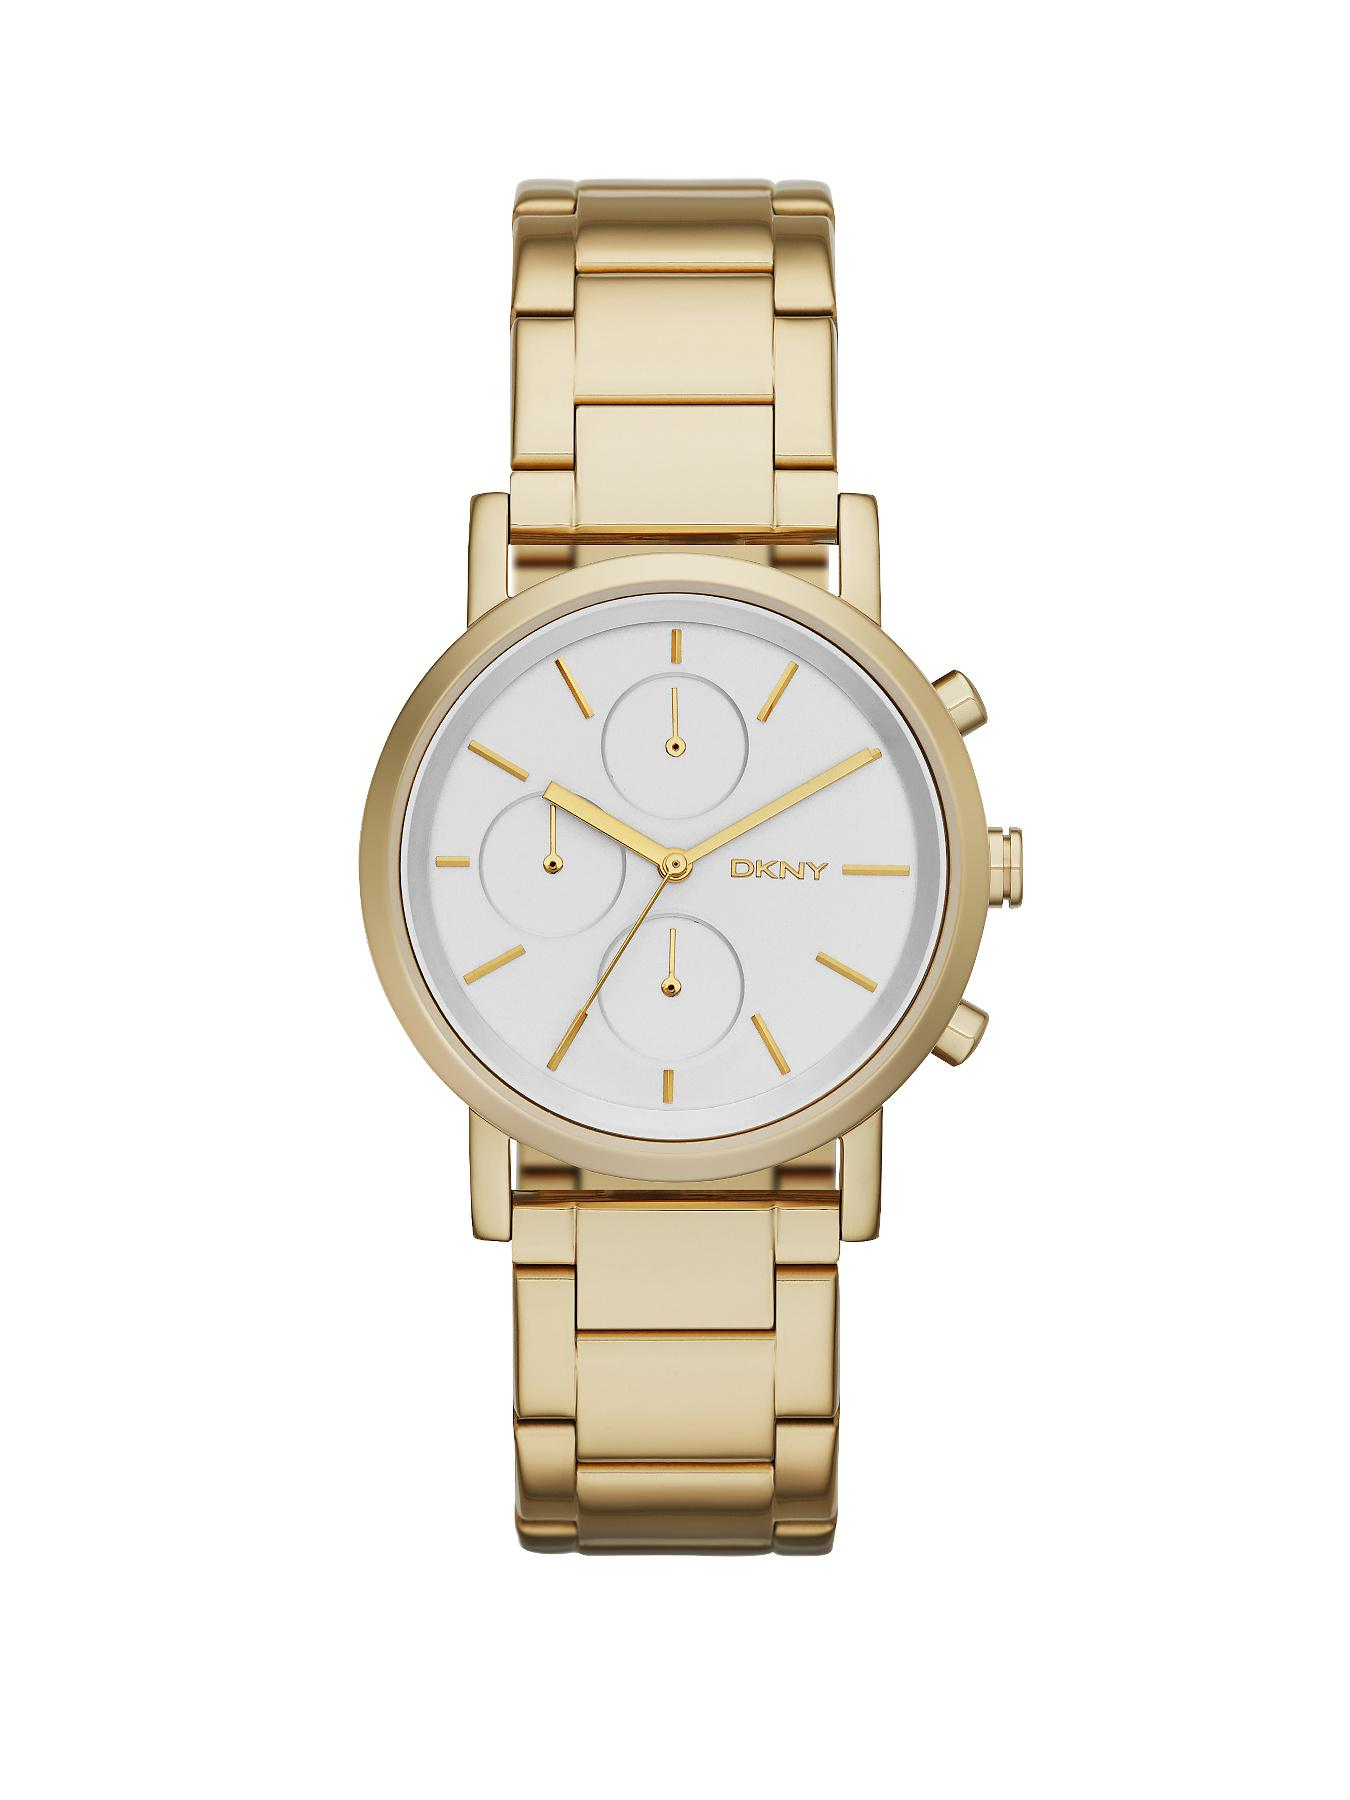 DKNY Soho Chronograph Gold Tone Stainless Steel Bracelet Ladies Watch